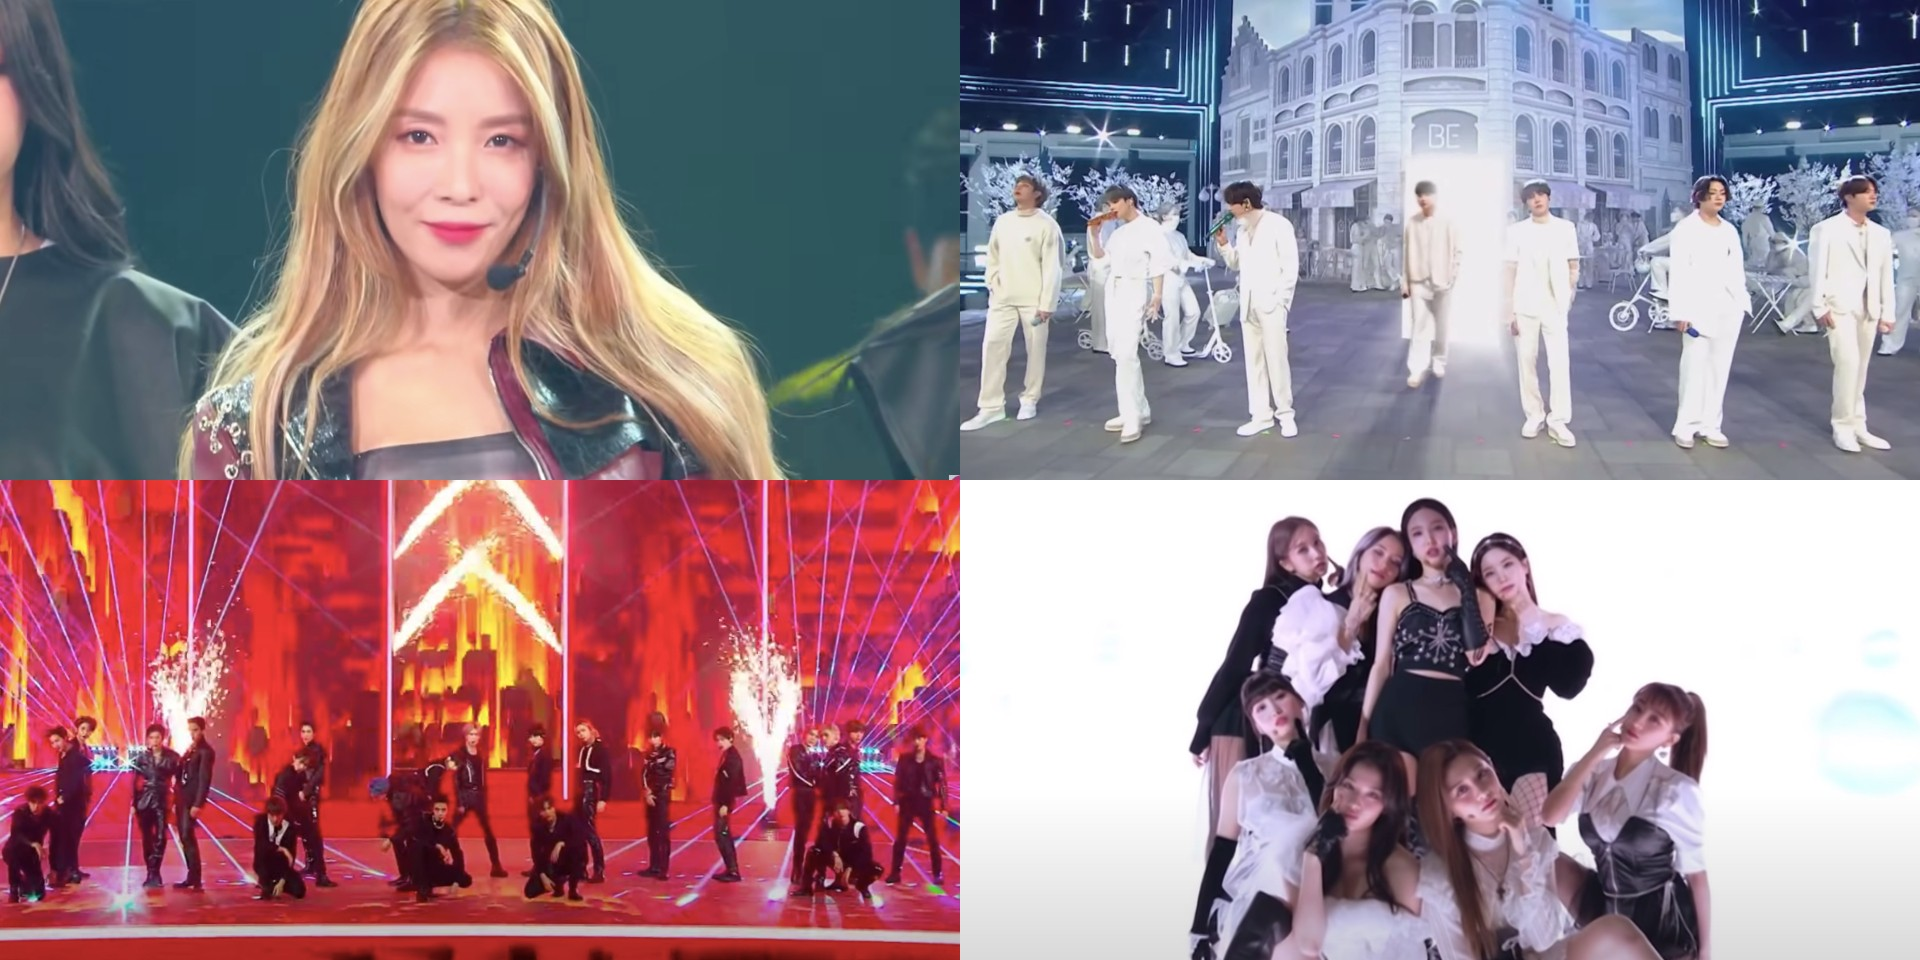 10 must-watch performances at the Mnet Asian Music Awards 2020